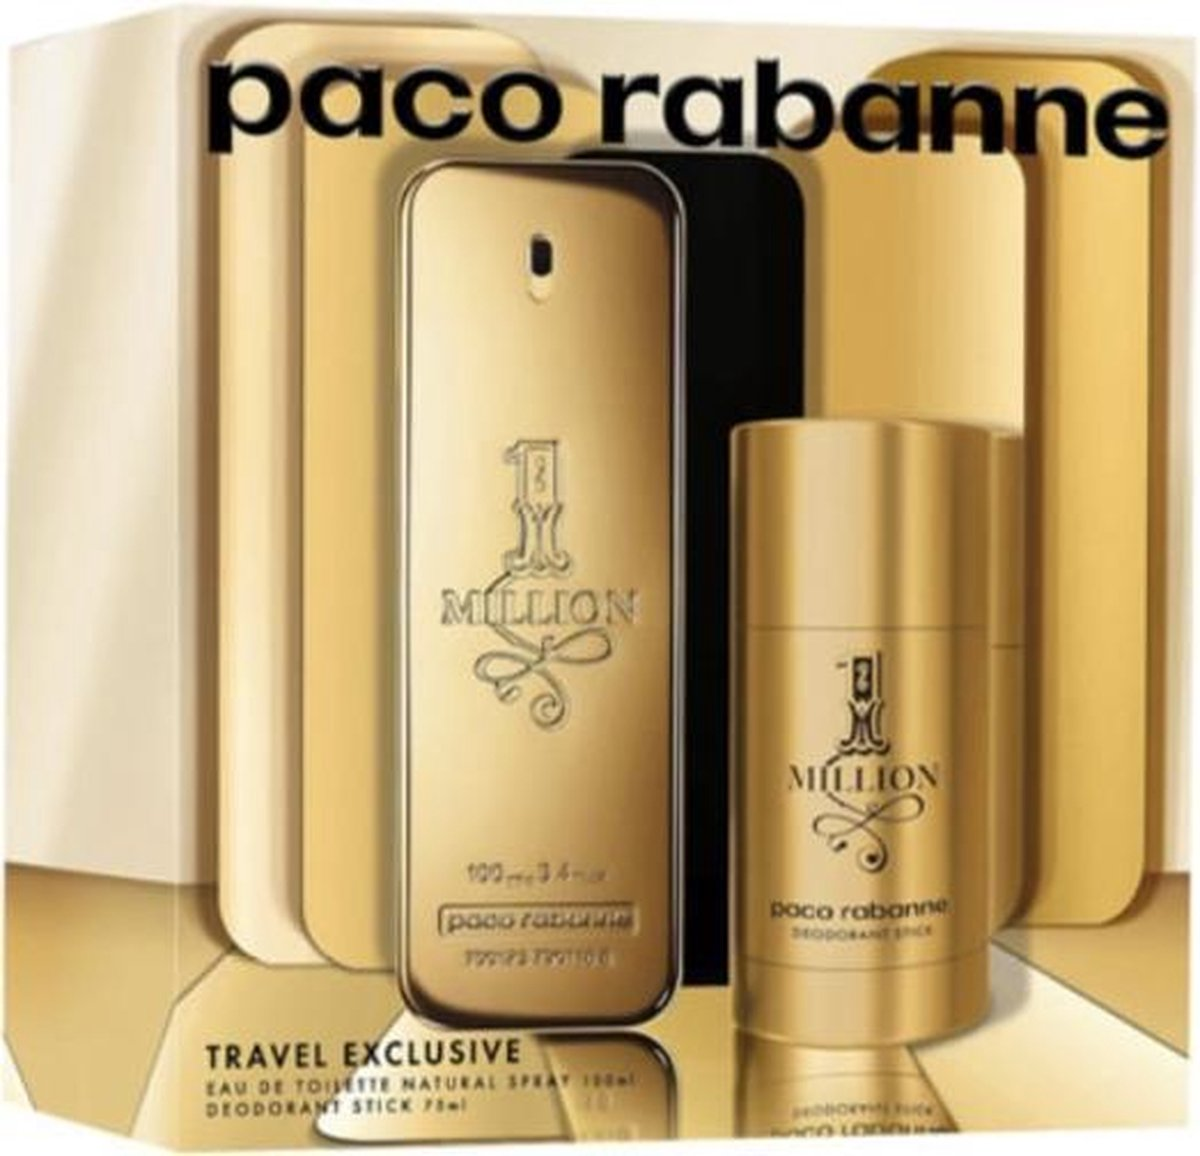 Paco Rabanne 1 Million Eau De Toilette Spray 100ml Set 2 Pieces 2020